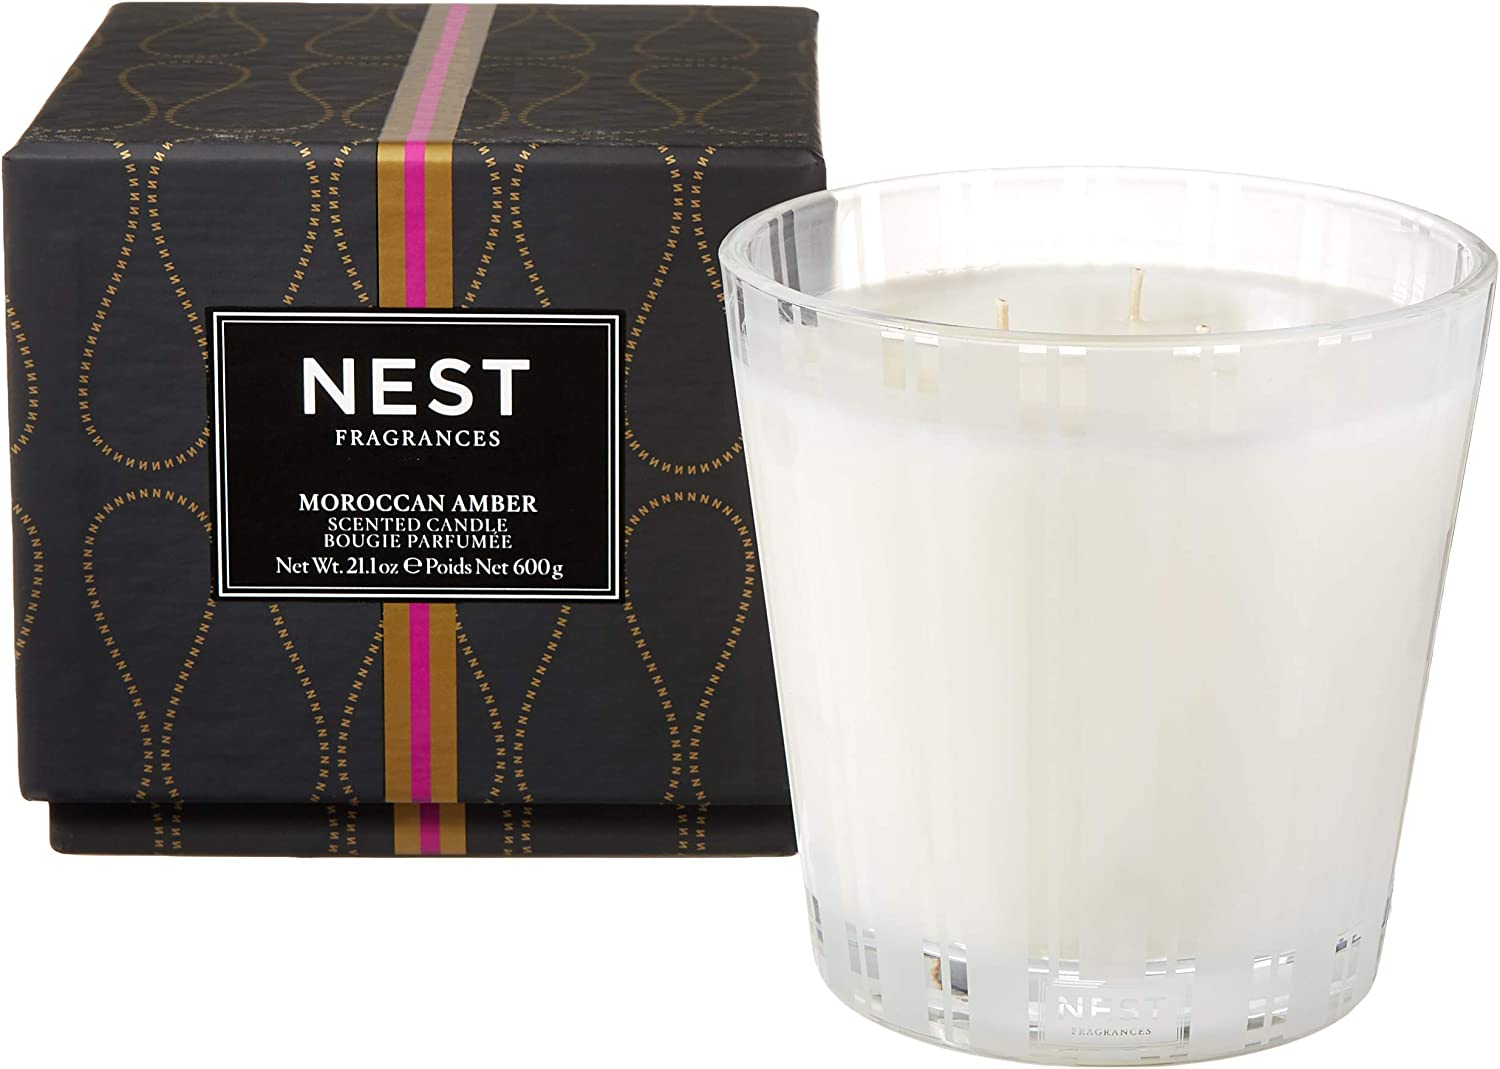 NEST Fragrances 3-Wick Candle- Moroccan Amber , 21.2 oz